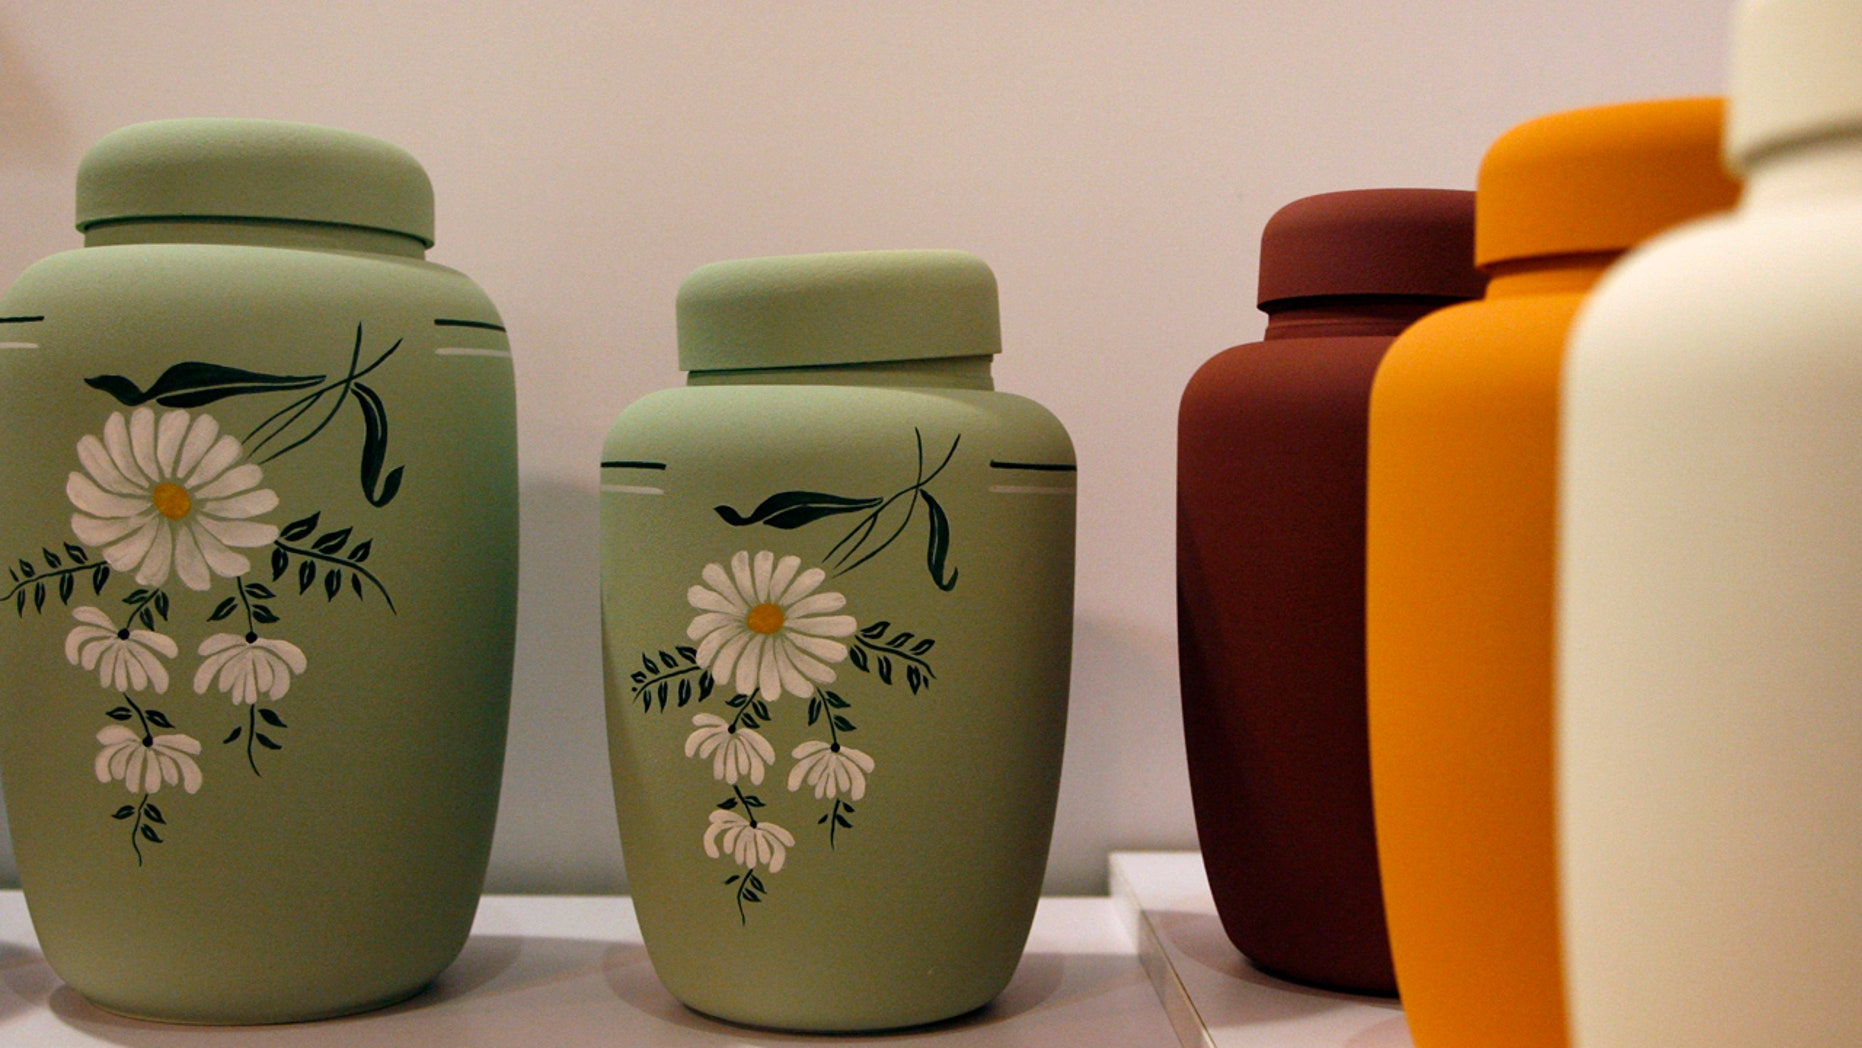 FILE: Eco-friendly cremation urns are displayed during the Asia Funeral Expo at the Macau Tower Convention center.